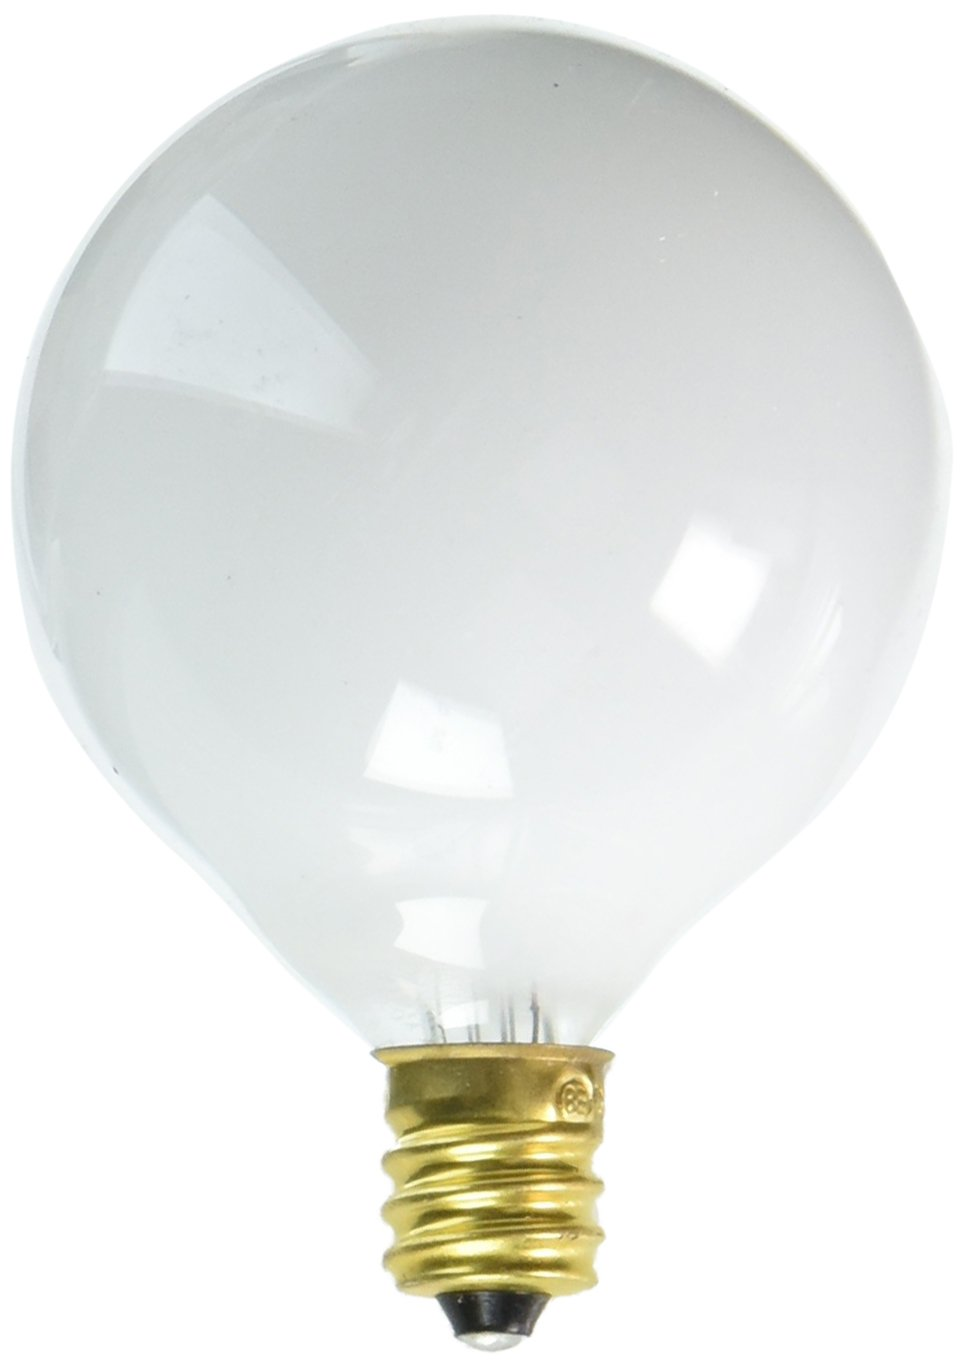 40 Pack Base with Candelabra Screw Bulbrite 861218 20 W Dimmable G16.5 Shape Incandescent Bulb E12